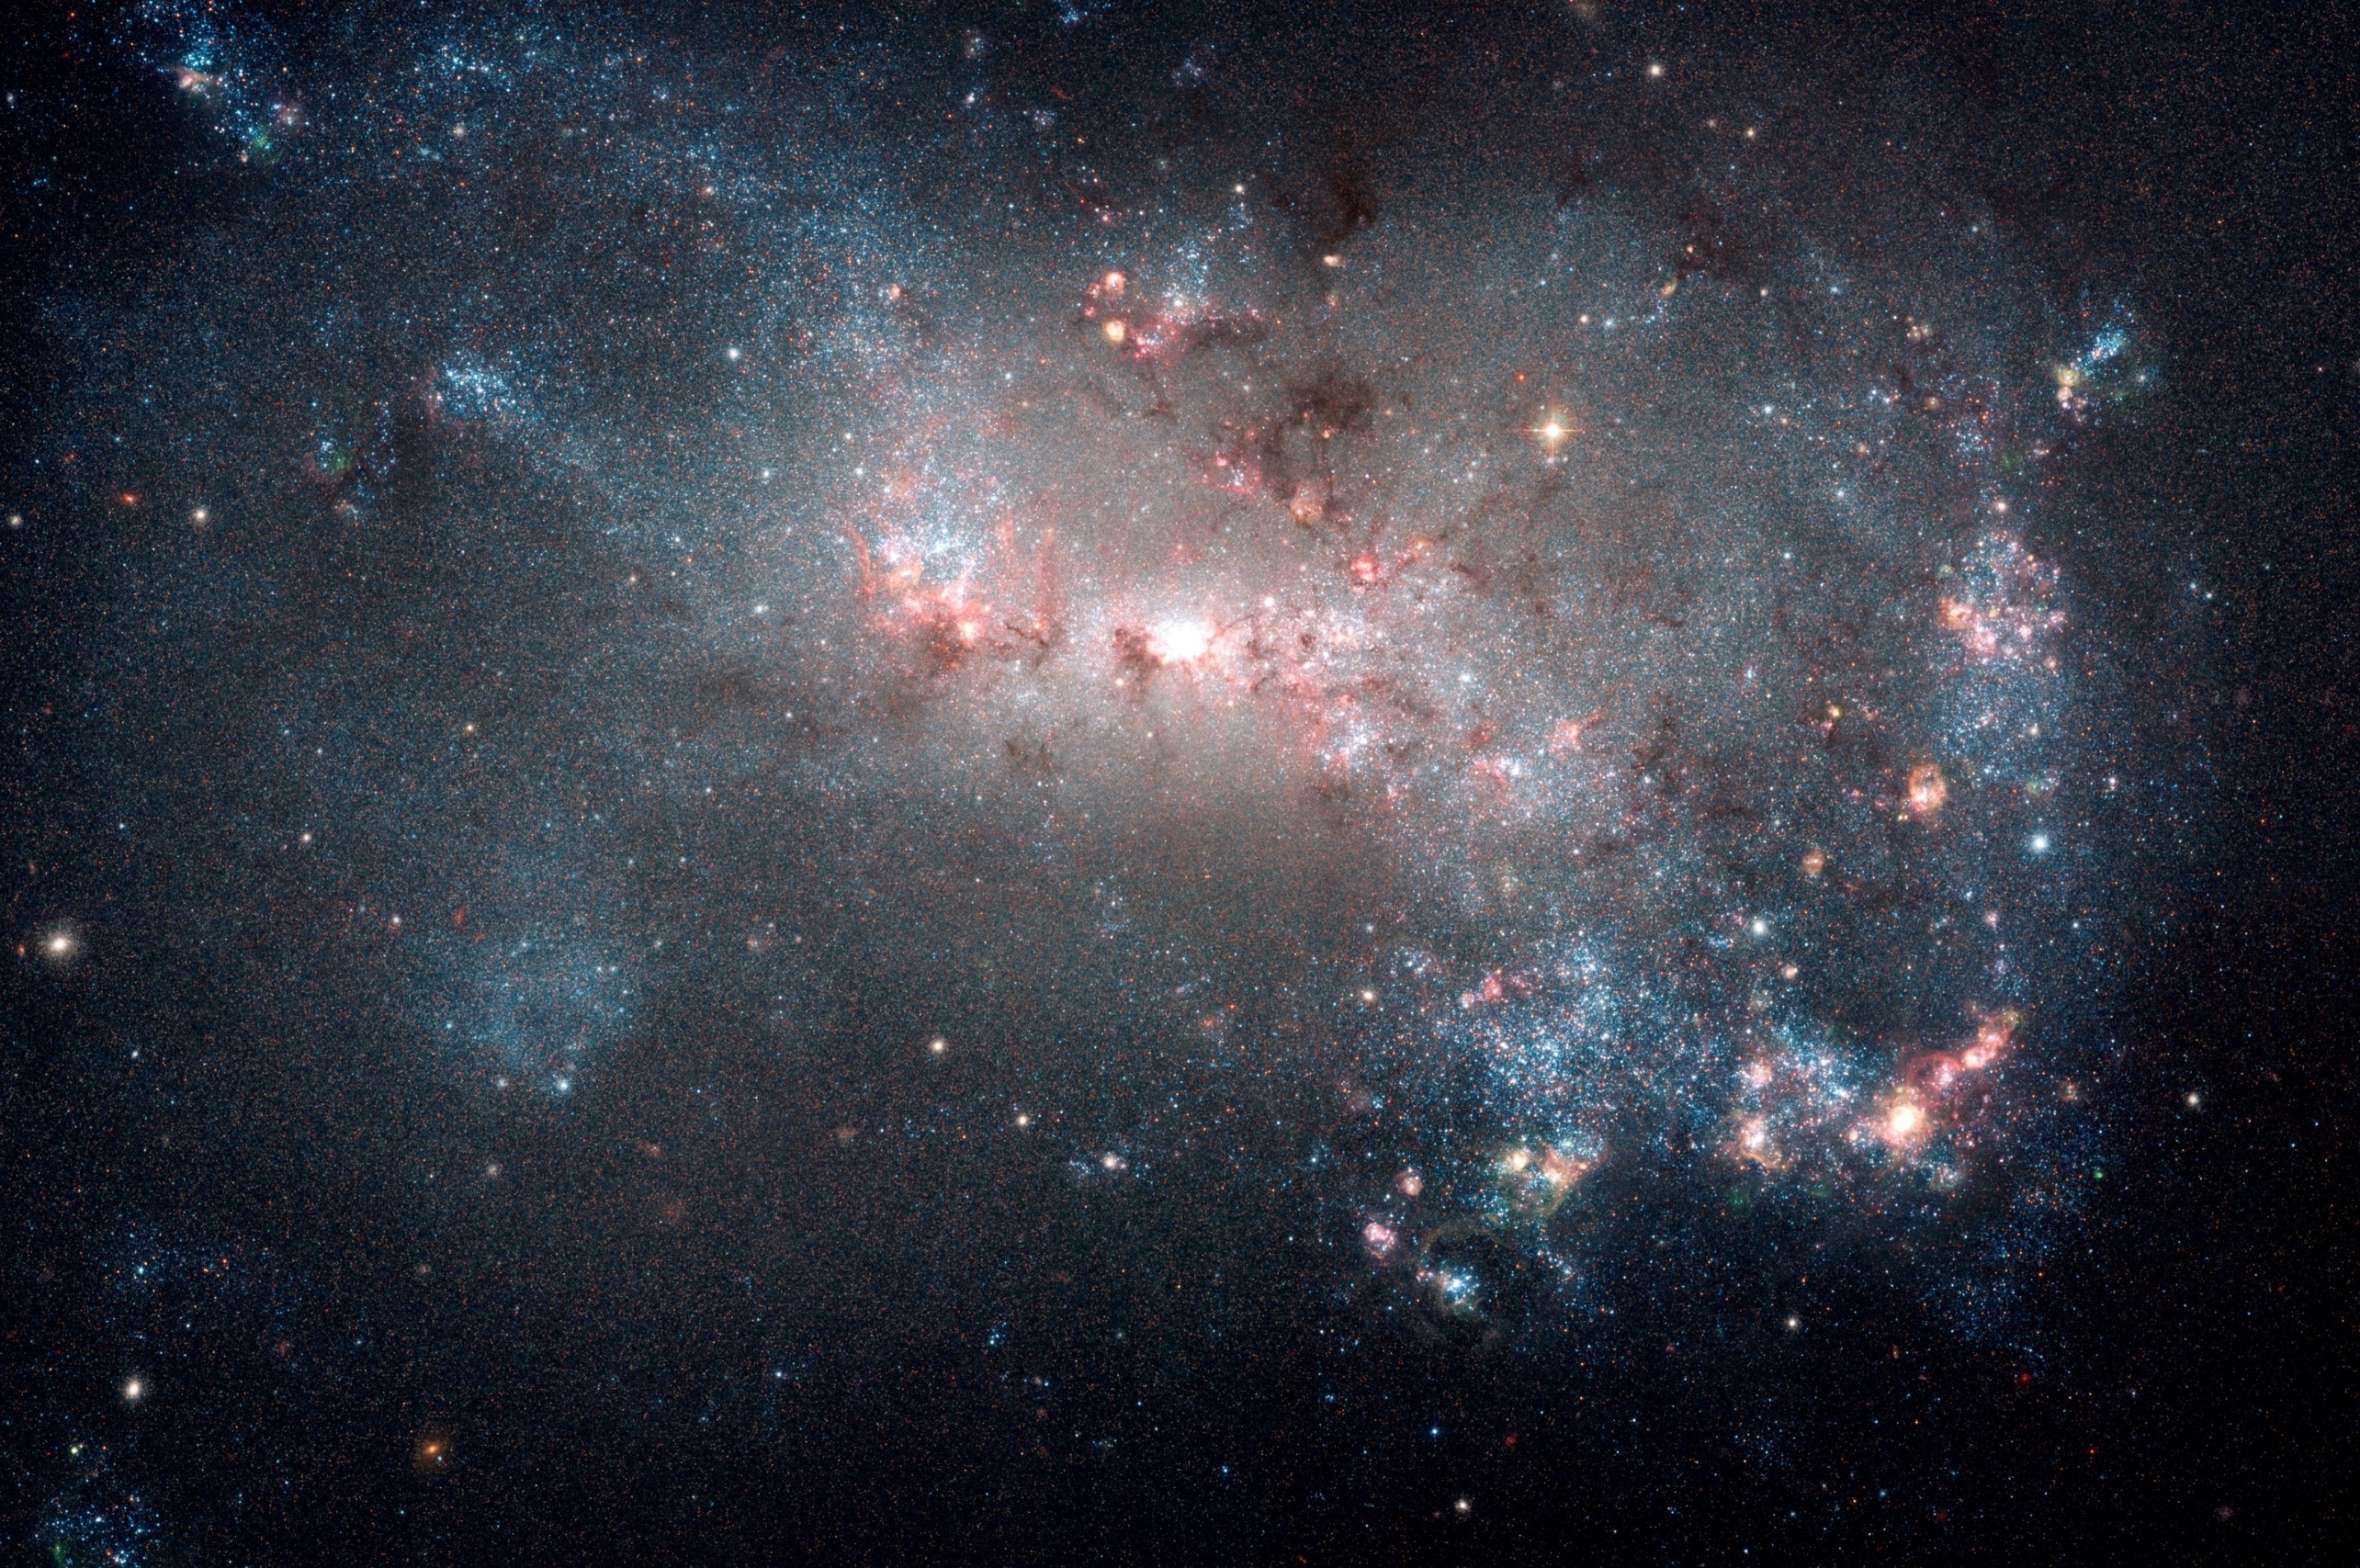 Hubble Space Telescope view of galaxy NGC 4449